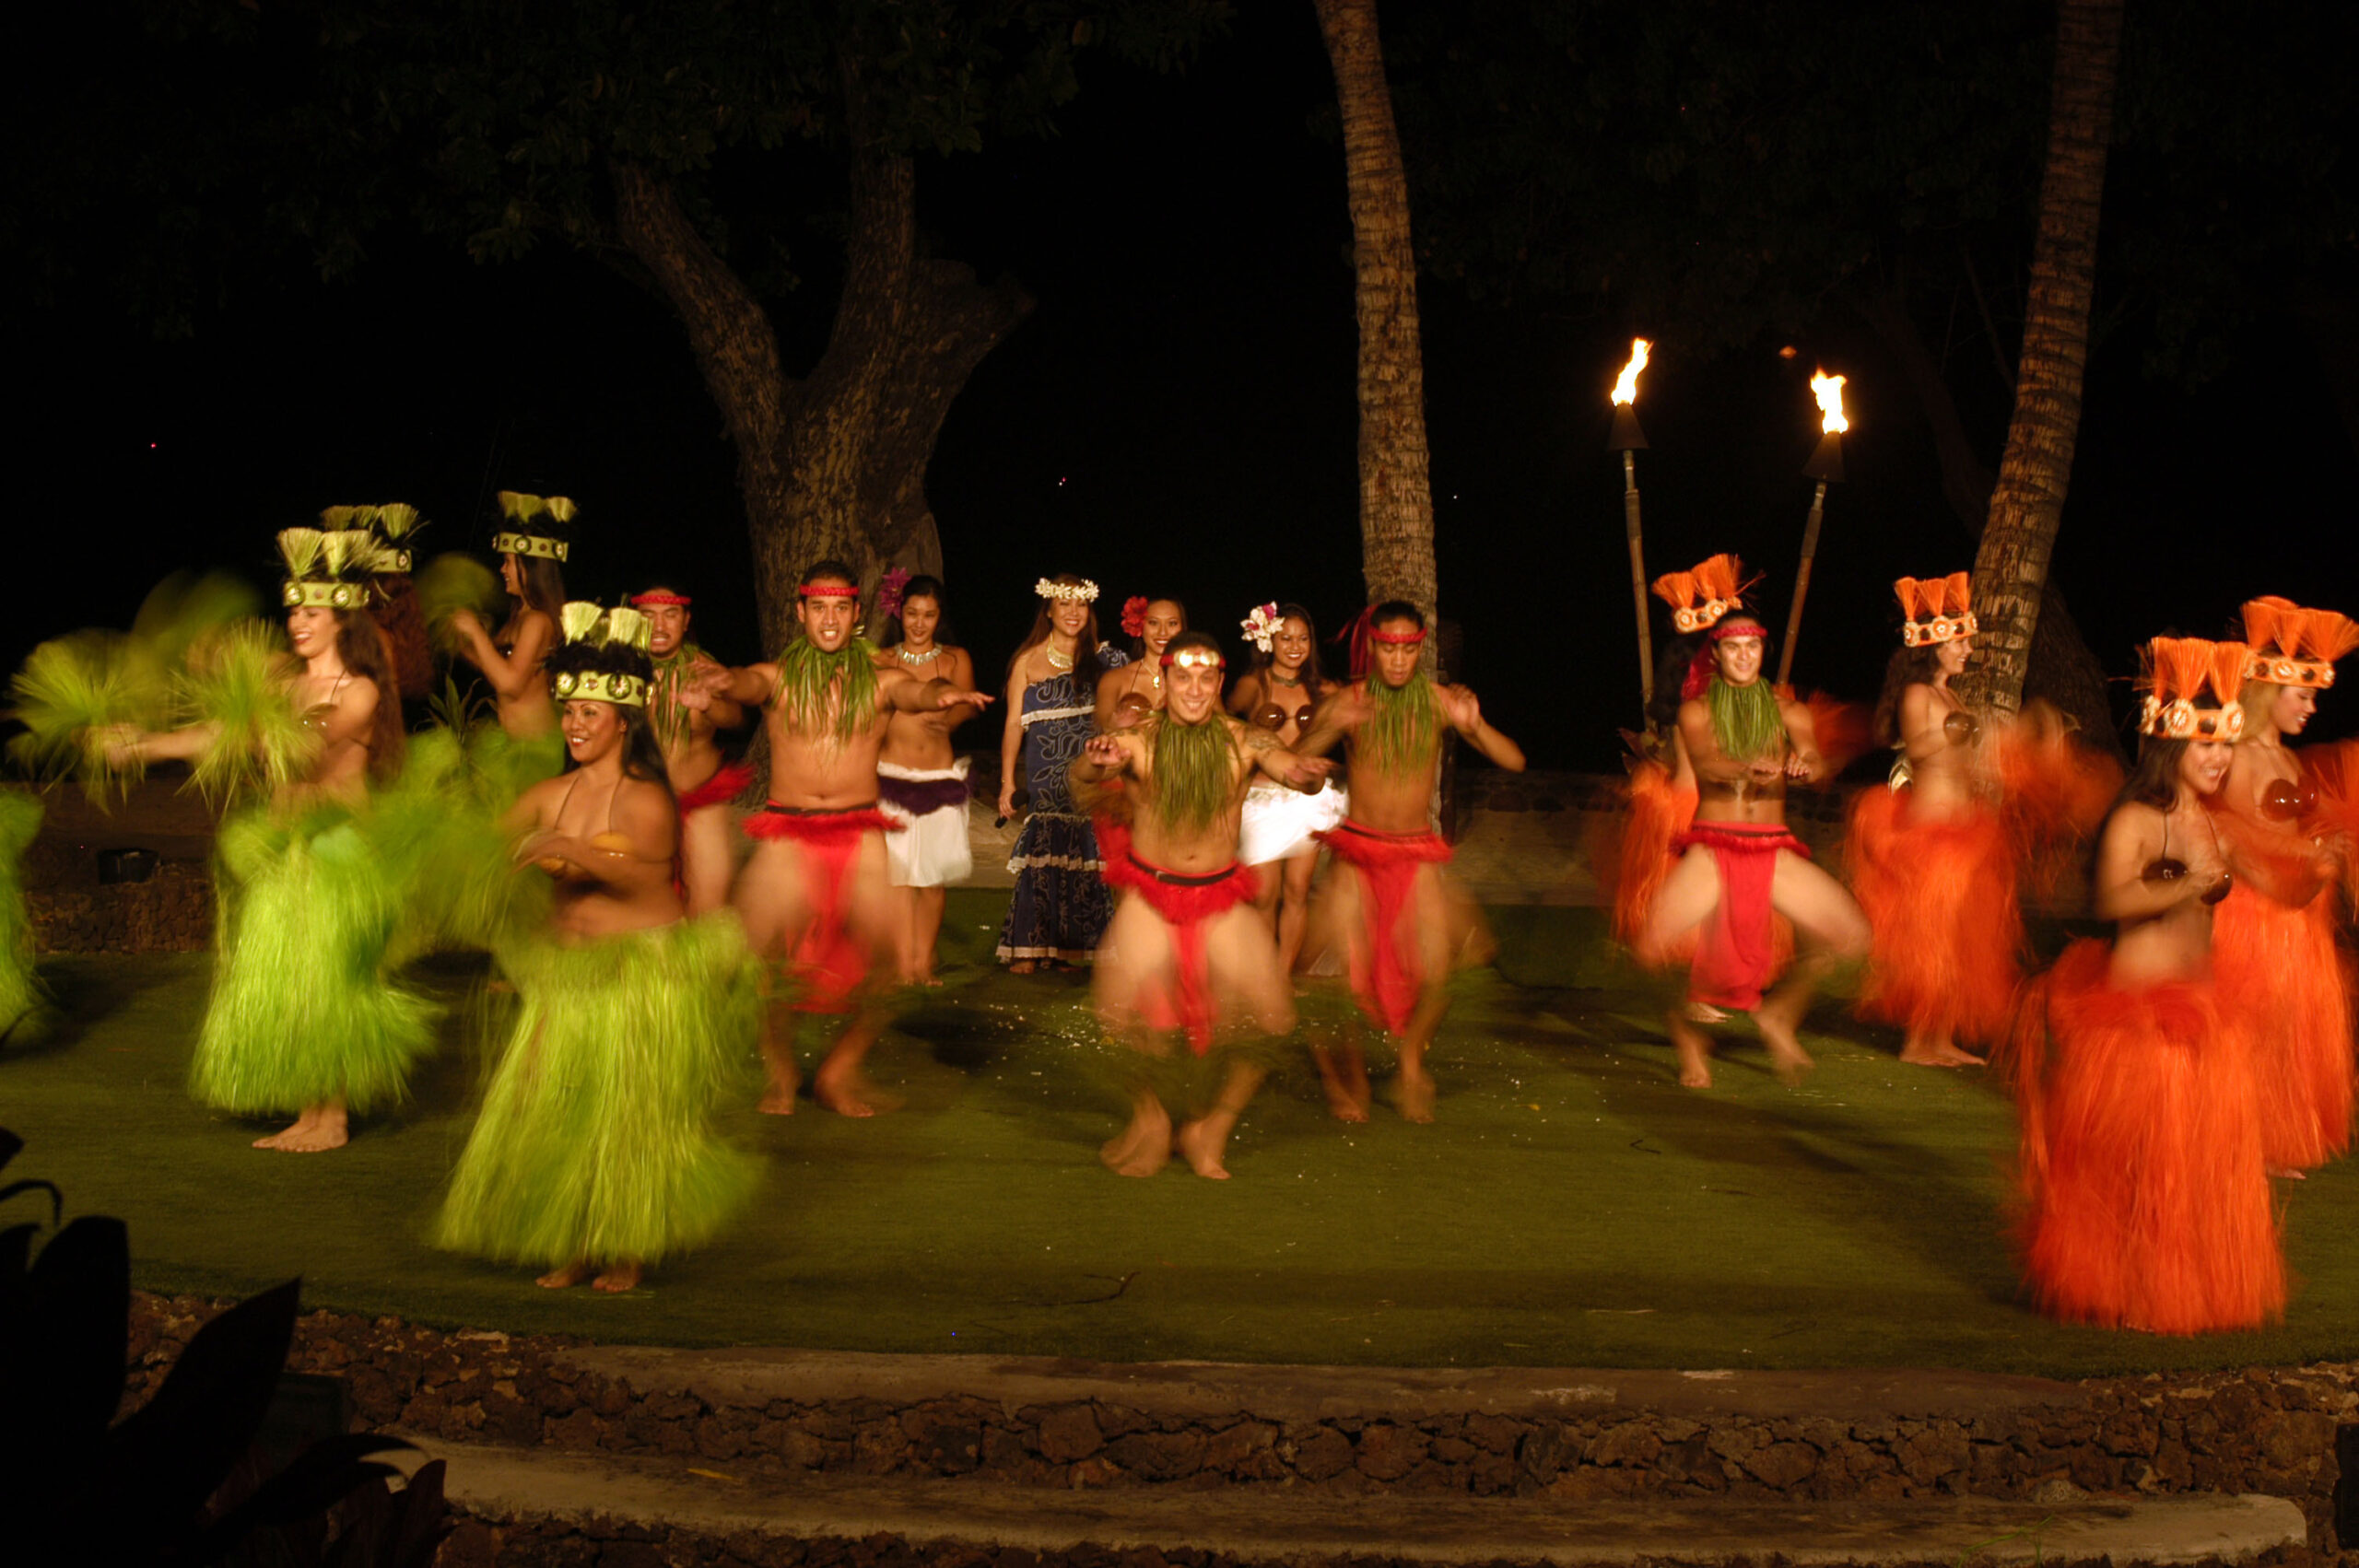 The Old Lahaina Luau is one of Maui's best Luaus.